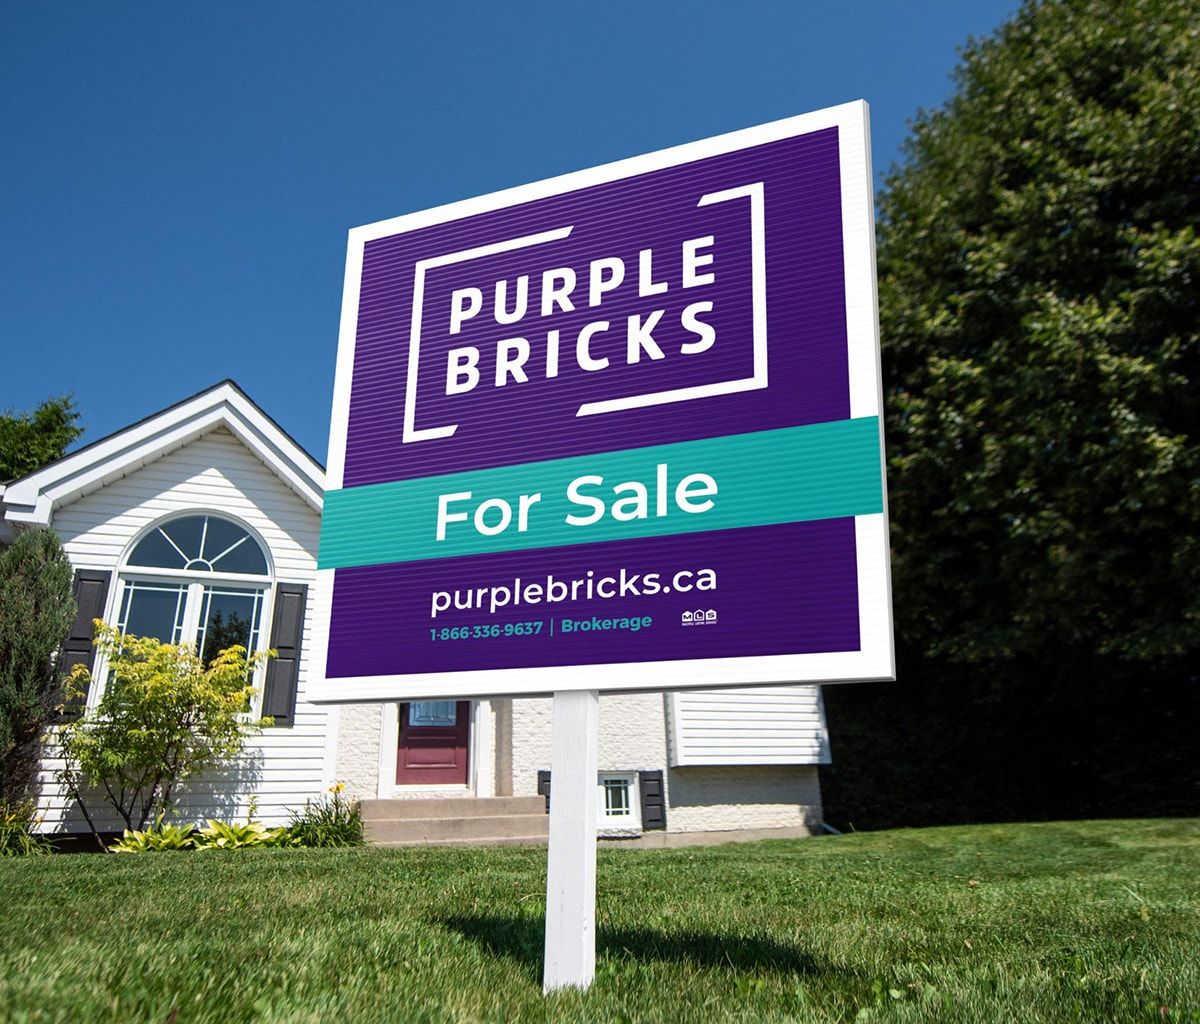 Purplebricks lawn sign in Ontario.